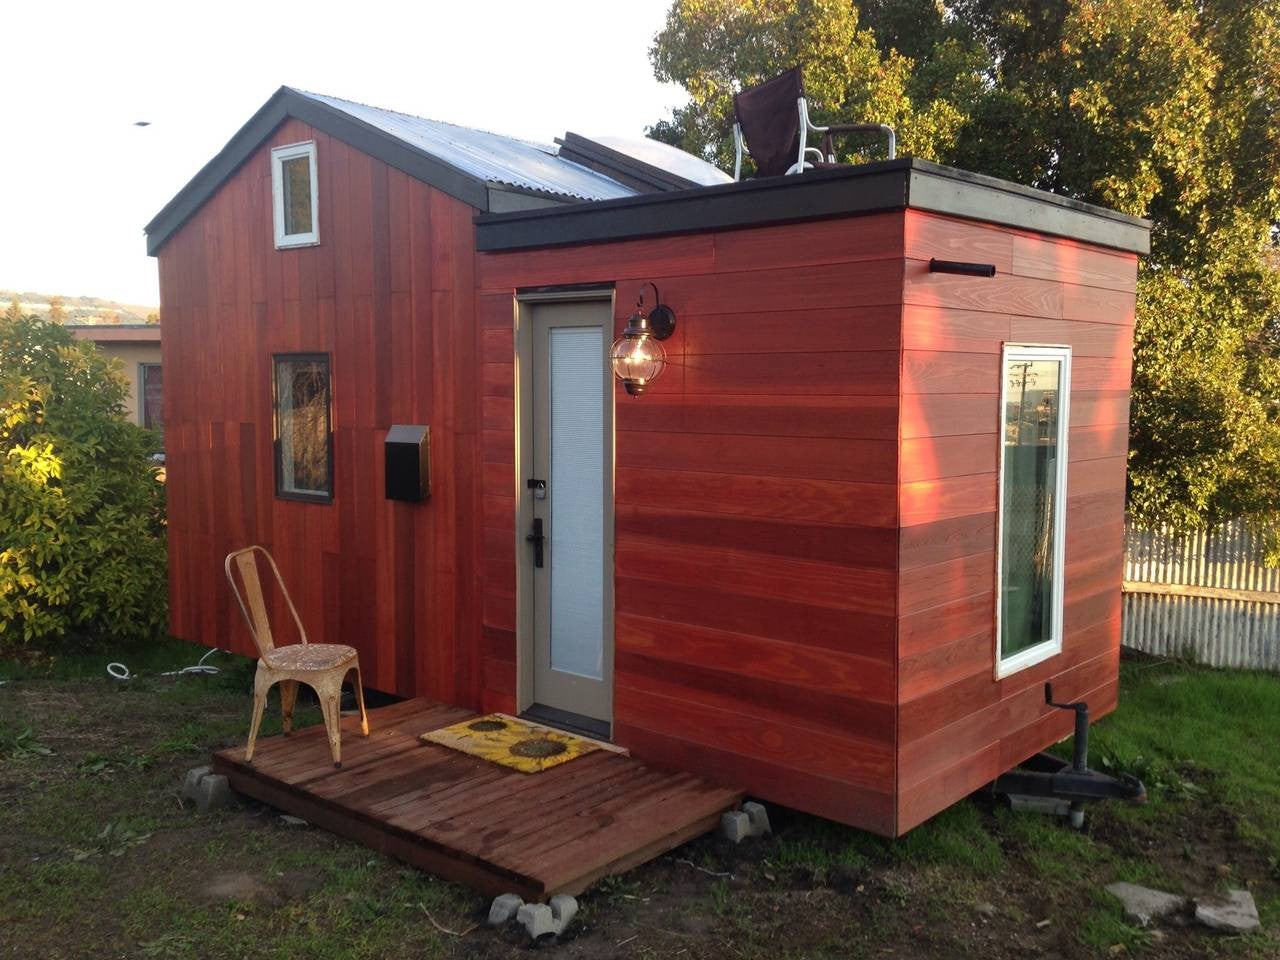 best tiny house for rent airbnb 2018 small home rentals. Black Bedroom Furniture Sets. Home Design Ideas